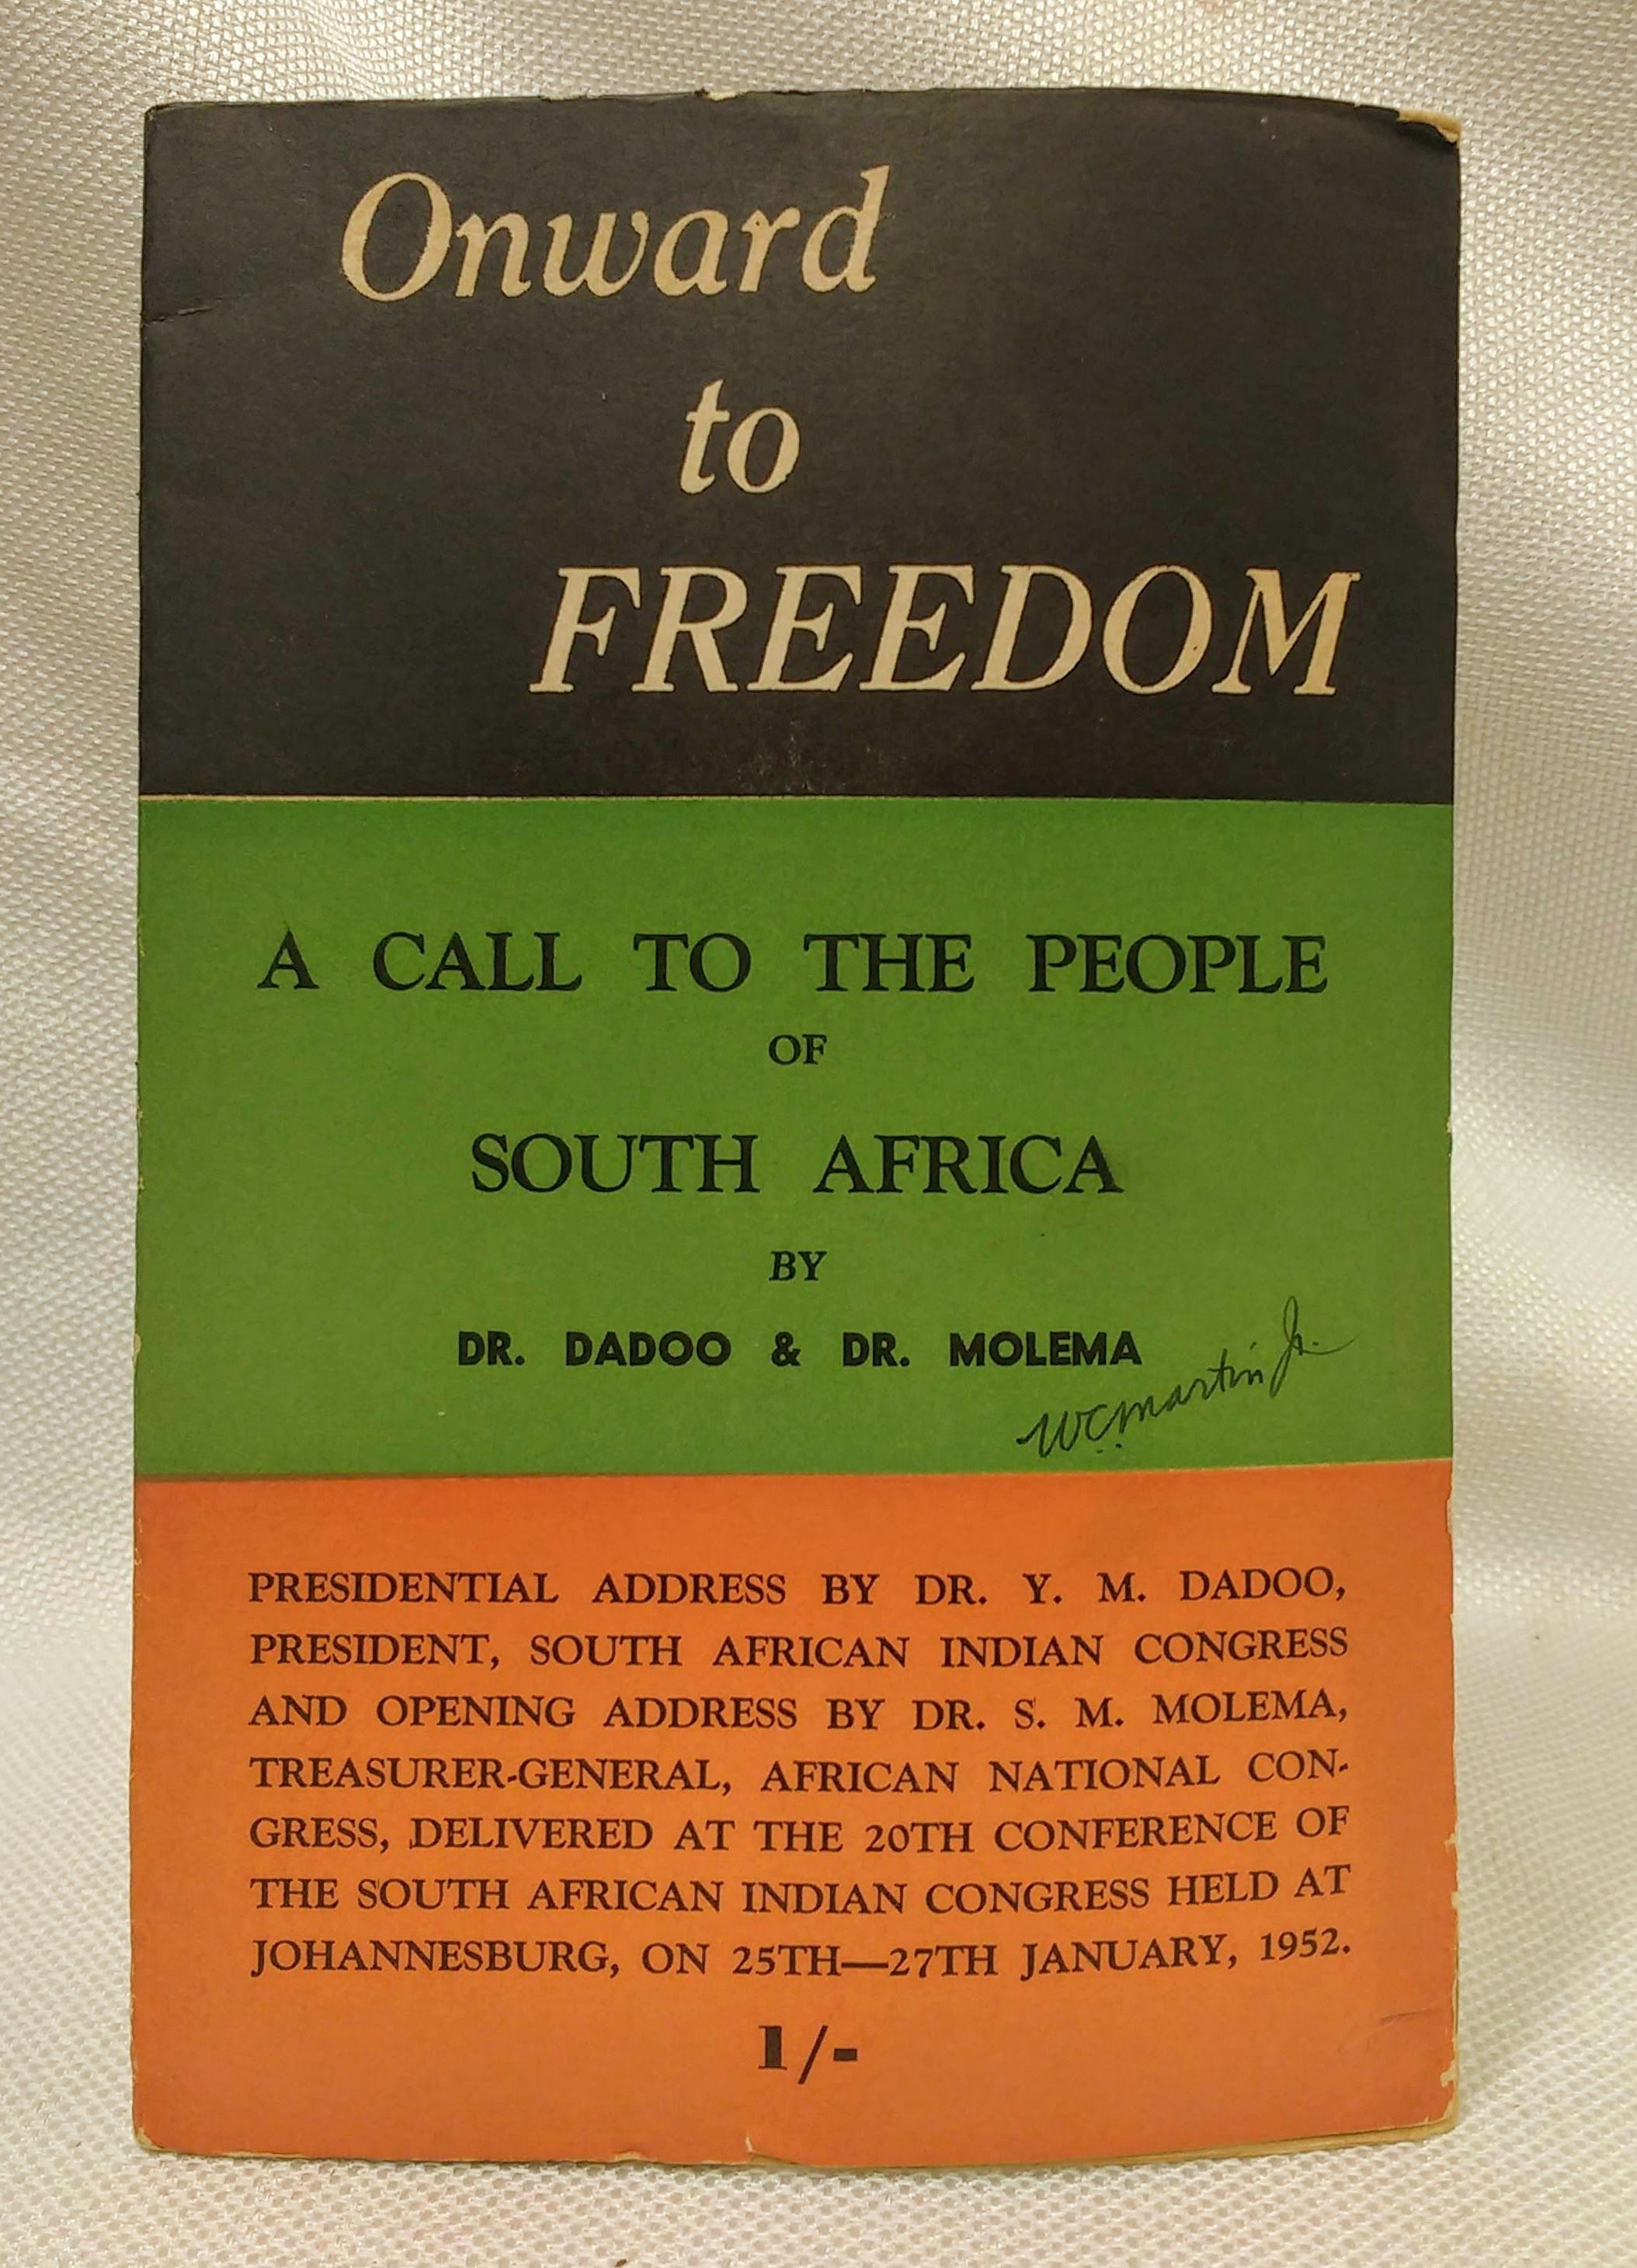 Onward to Freedom: A Call to the People of South Africa, Dadoo, Yusuf Mohammed; Molema, Silas Modiri; Cachalia, Yusuf A. [introduction]